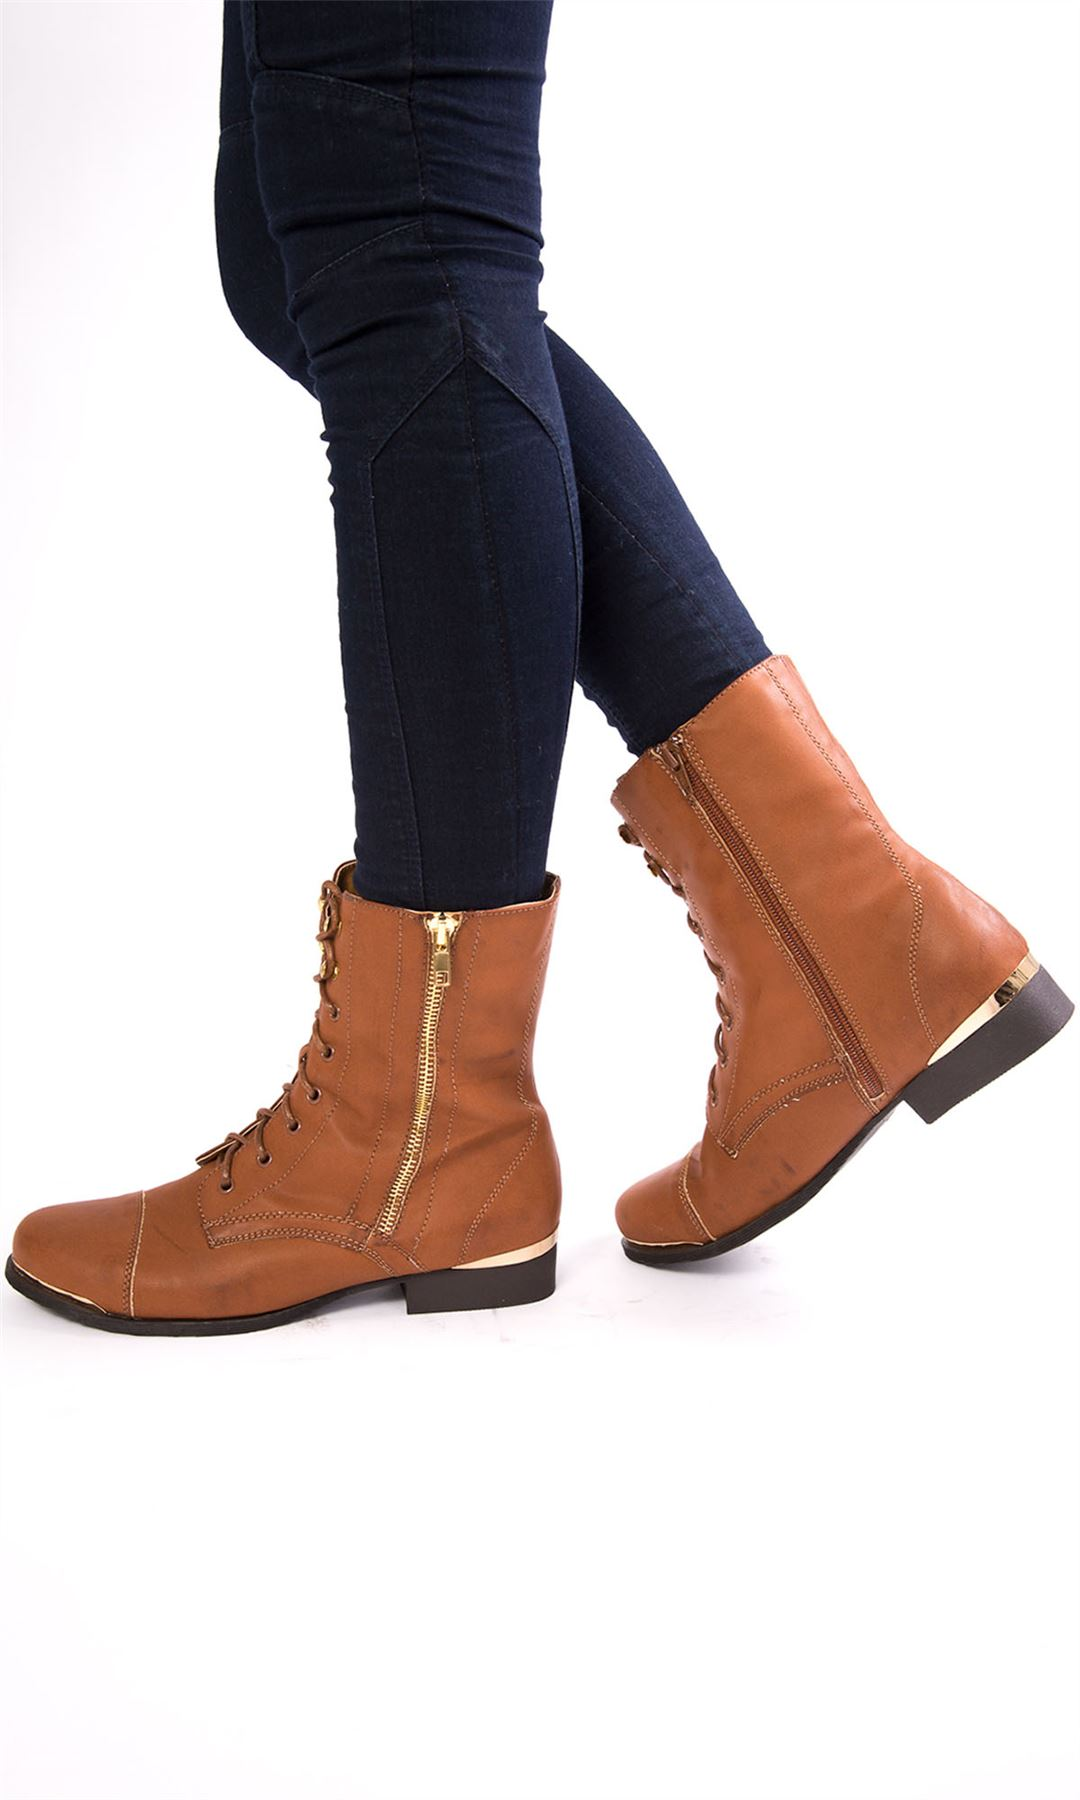 Tan Ankle Boots For Women Z2MuLro6